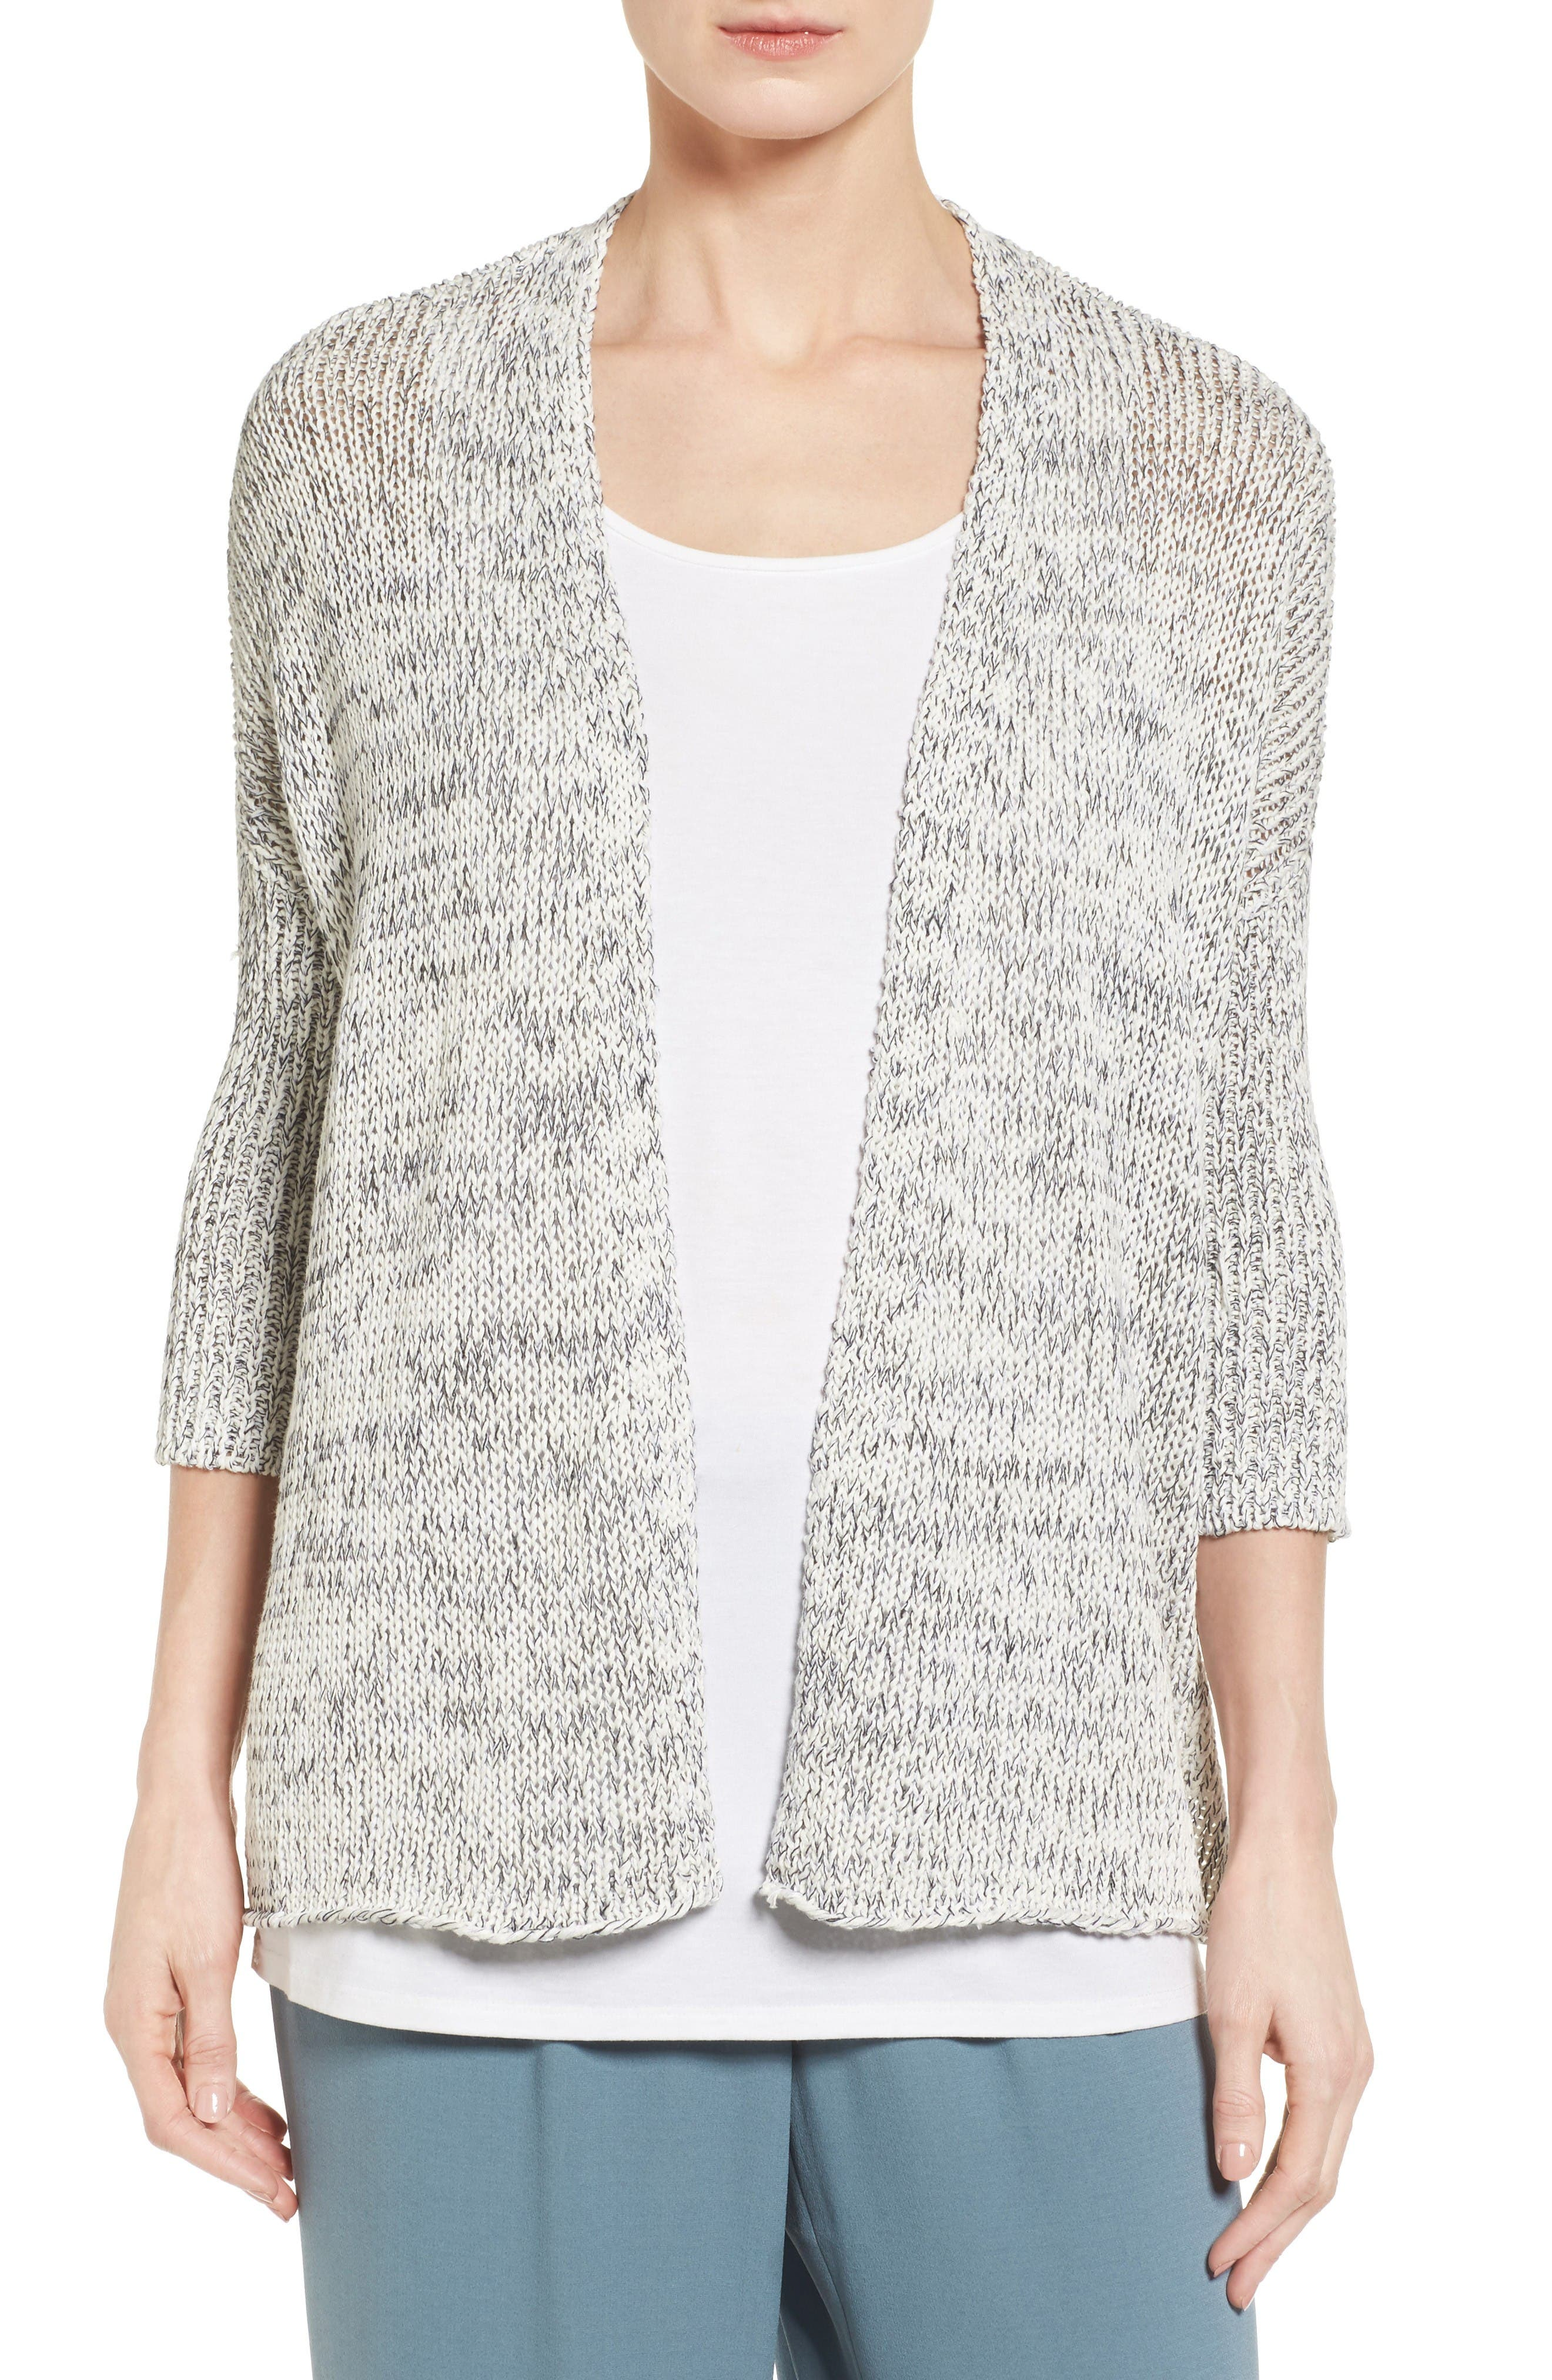 Eileen Fisher Boxy Cardigan